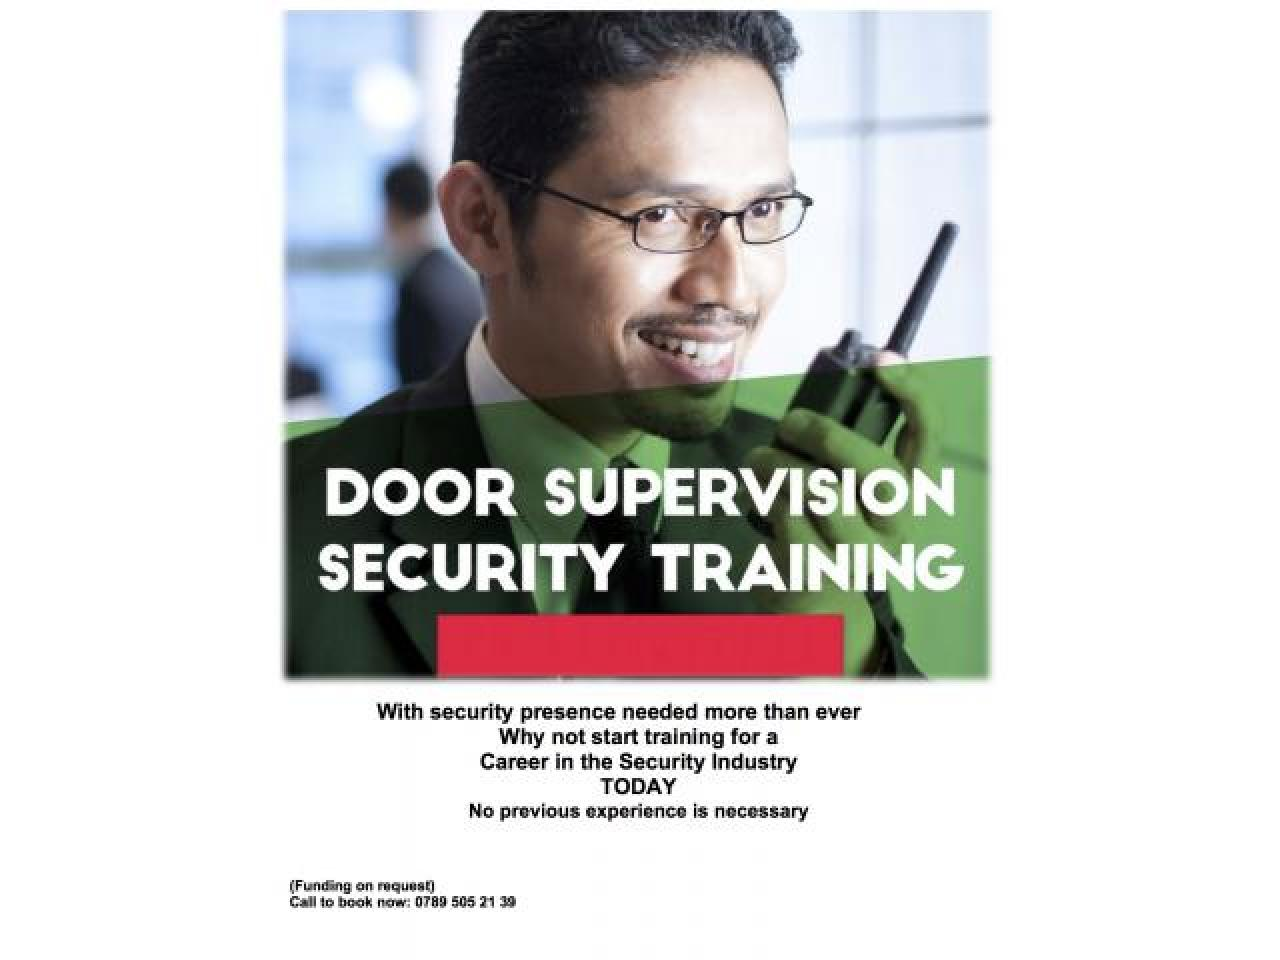 Security officer course and job opportunities - 2